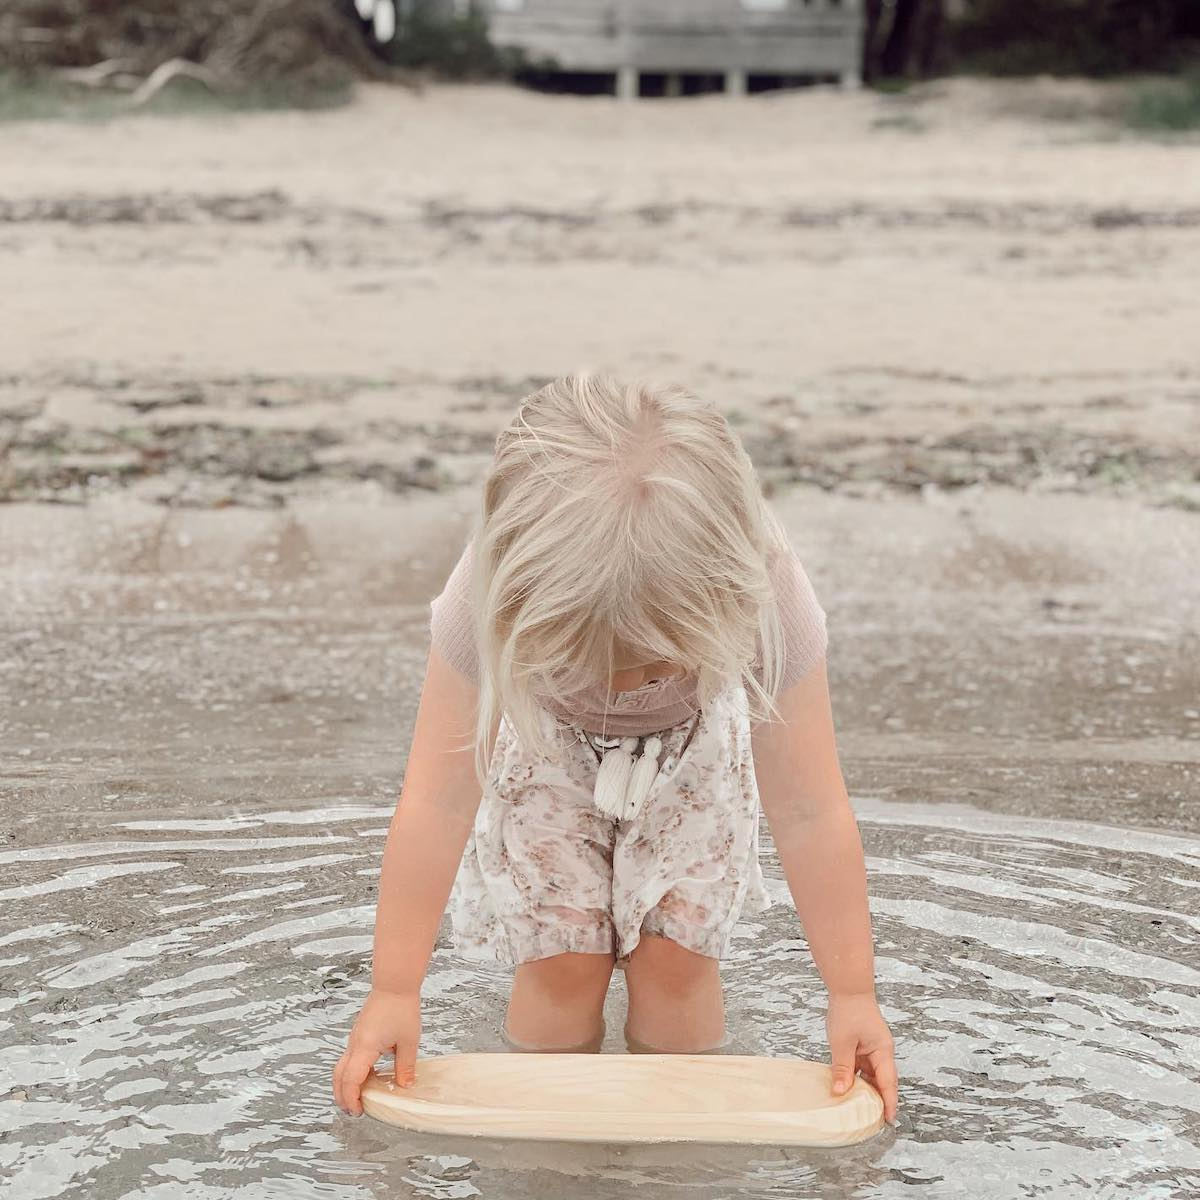 Young child using an Explore Nook open-ended water toy to play at the beach.